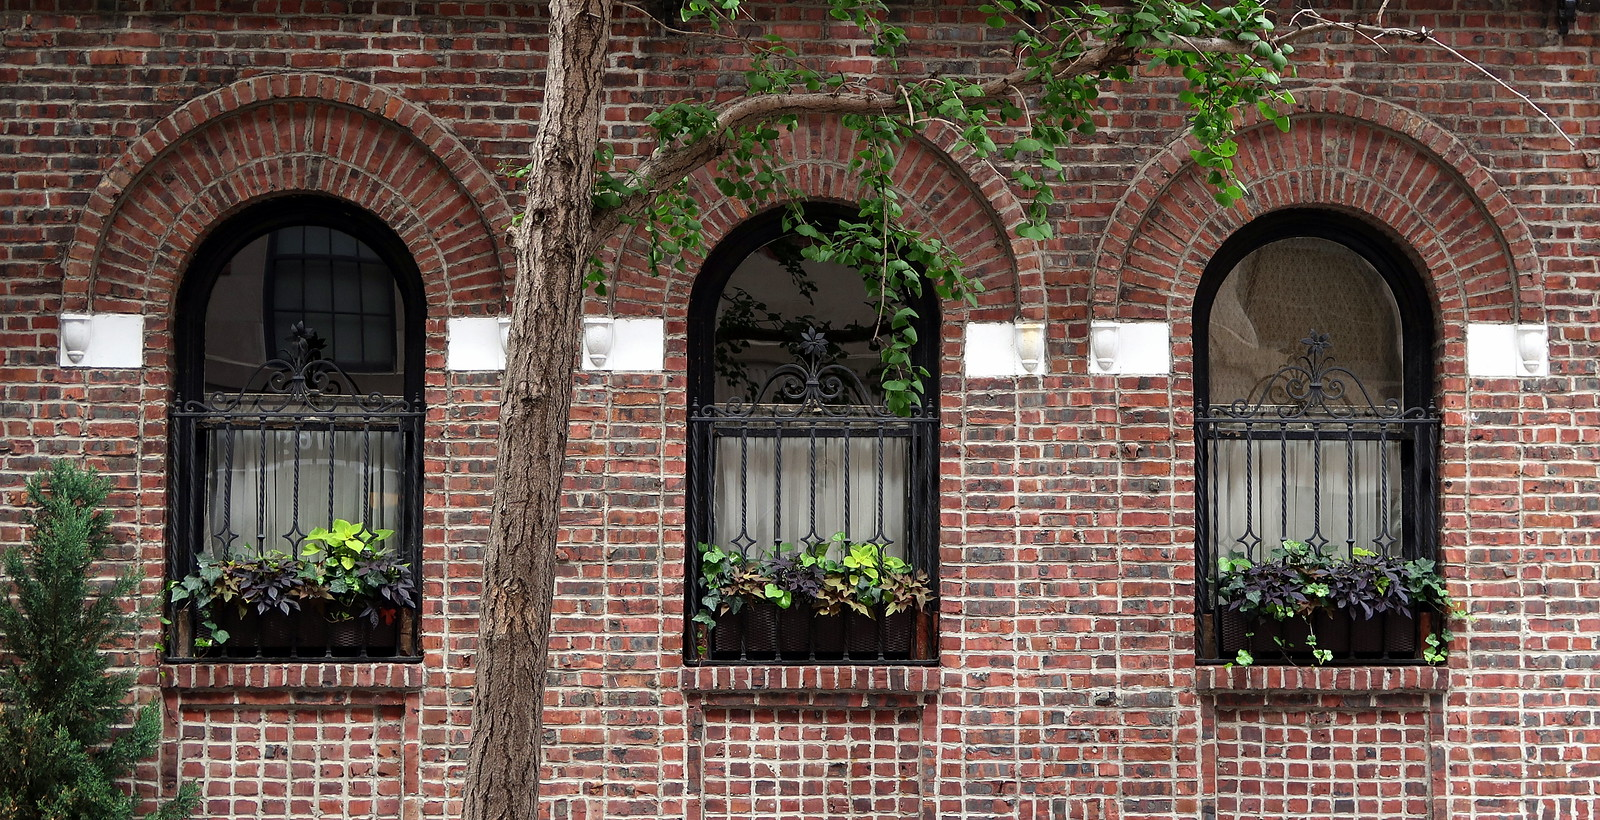 Windows arched with narrow brickwork, 169 West 12th Street (1922), Greenwich Village, New York